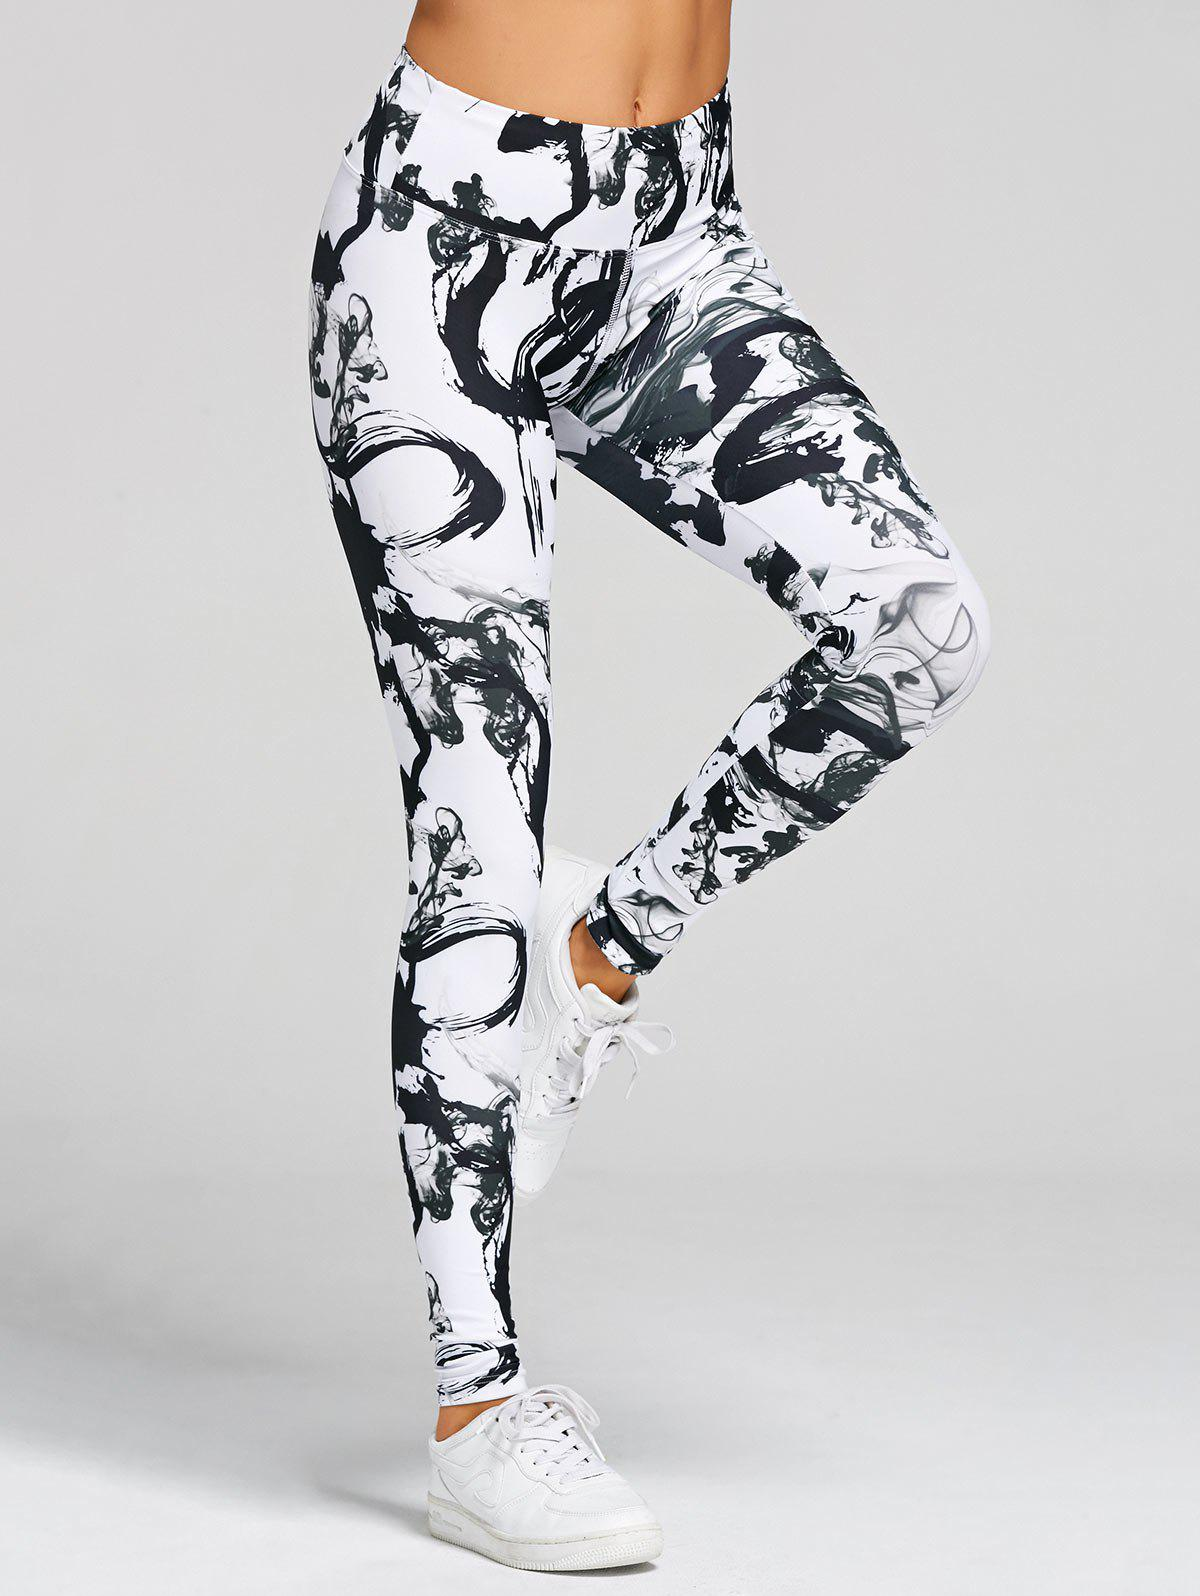 High Waisted Printed Skinny Yoga Leggings - WHITE/BLACK 2XL